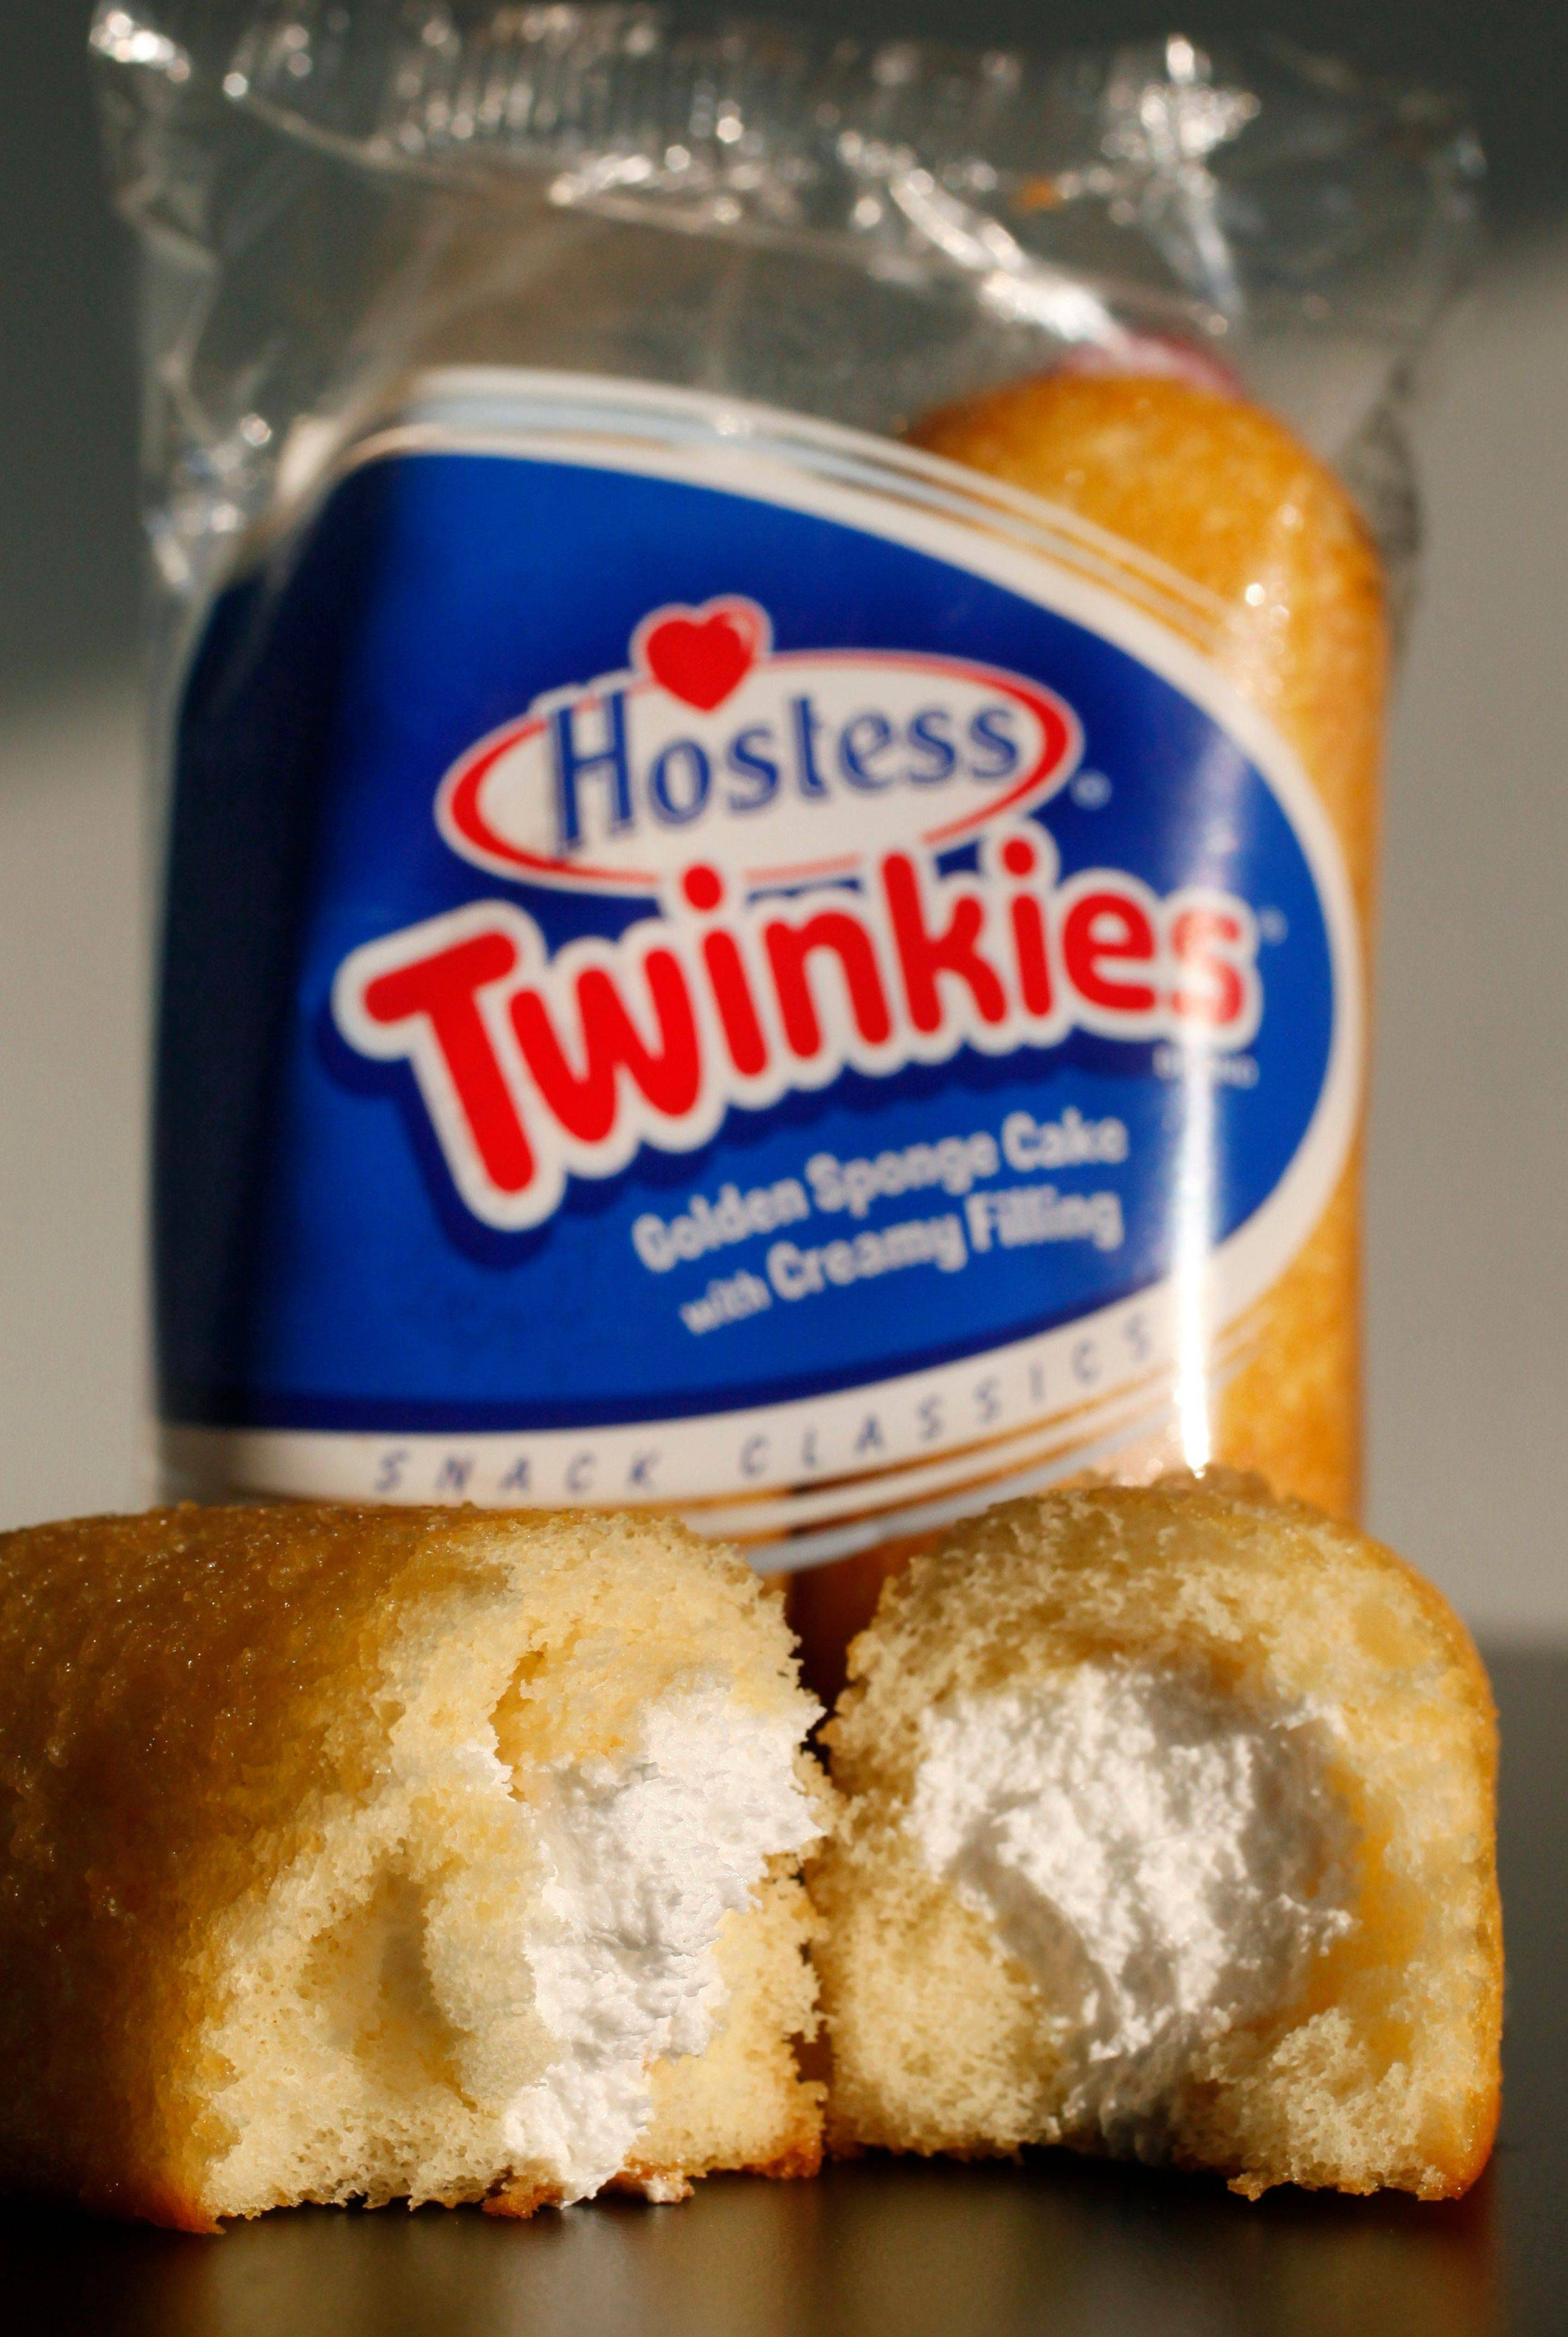 Americans snapped up boxes of Twinkies in 2012 in response to news that Hostess Brands was closing up shop.